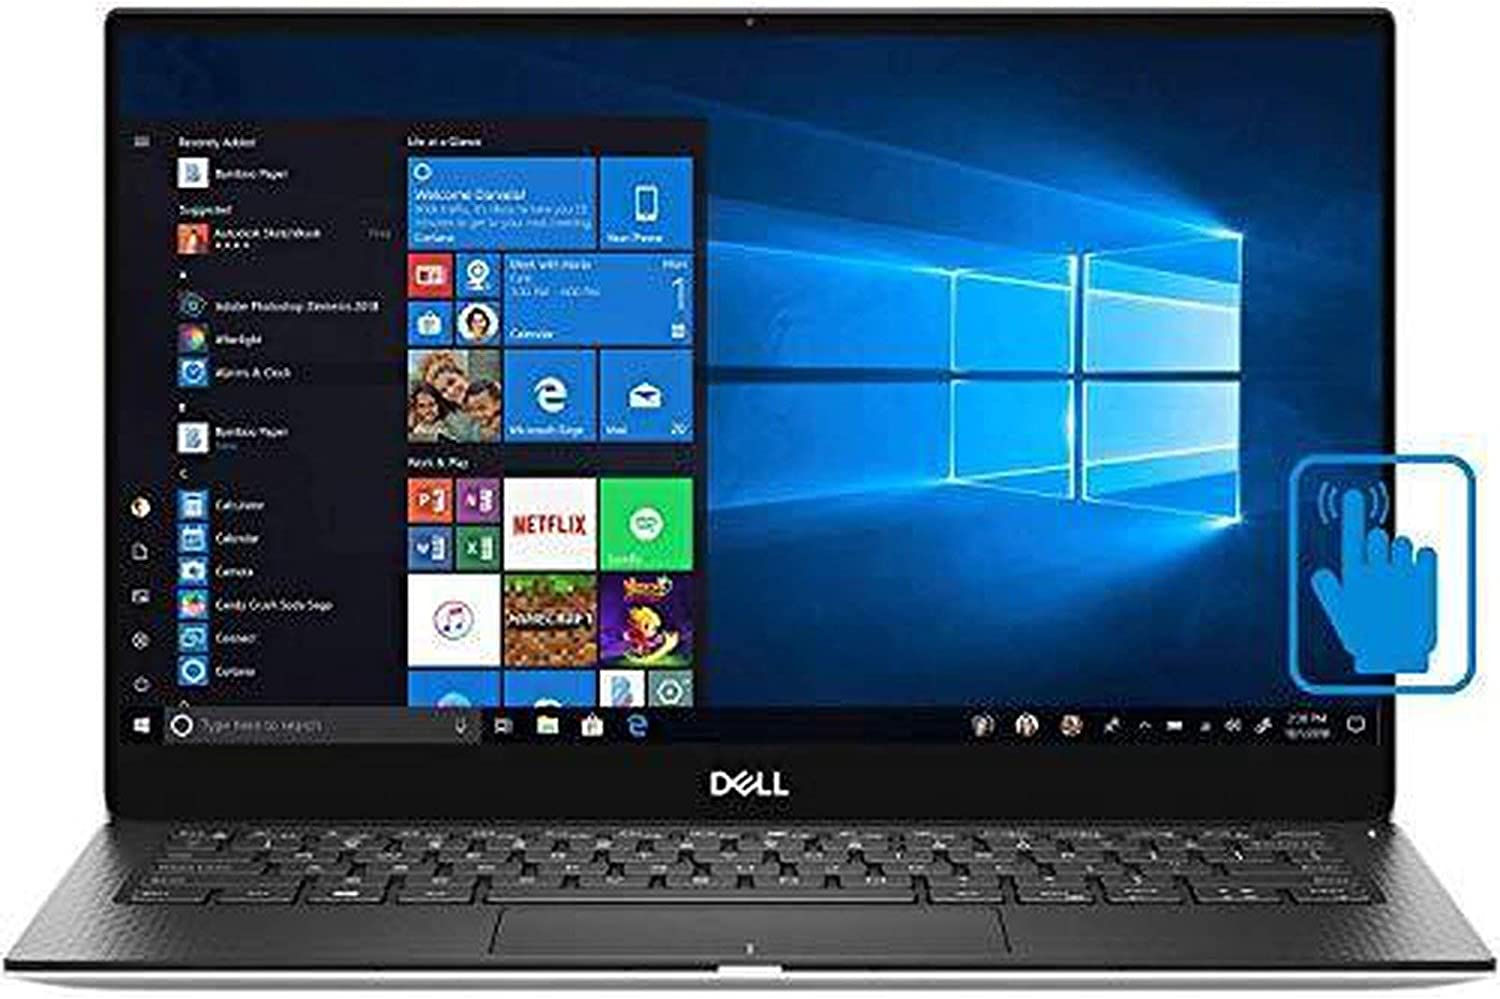 Dell XPS 13 7390 Thin and InfinityEdge 13.3